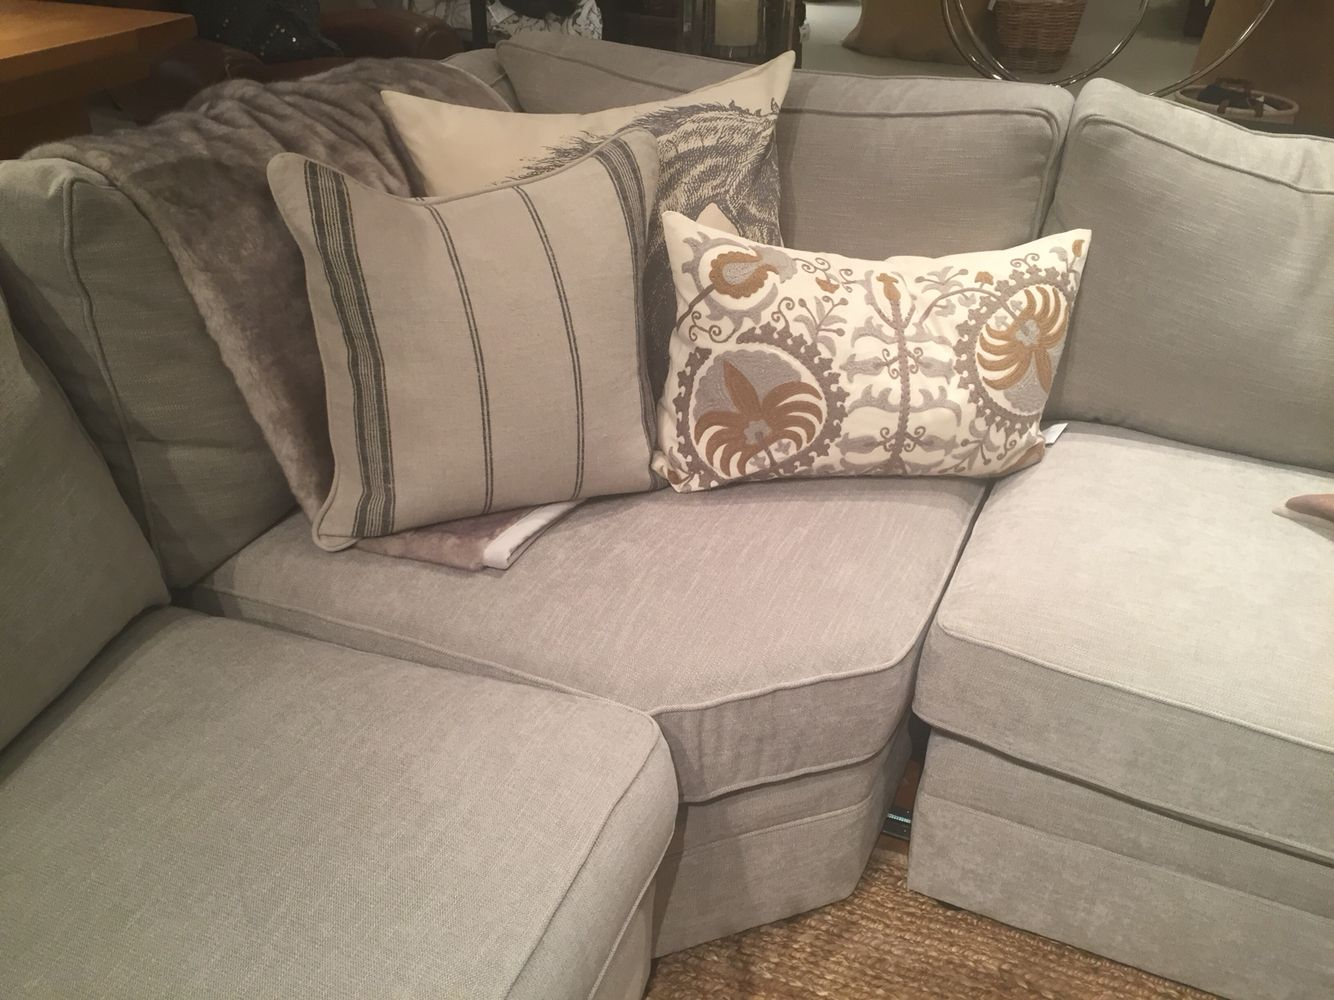 Pottery Barn Slipcover Couch In 2020 Pottery Barn Couch Slip